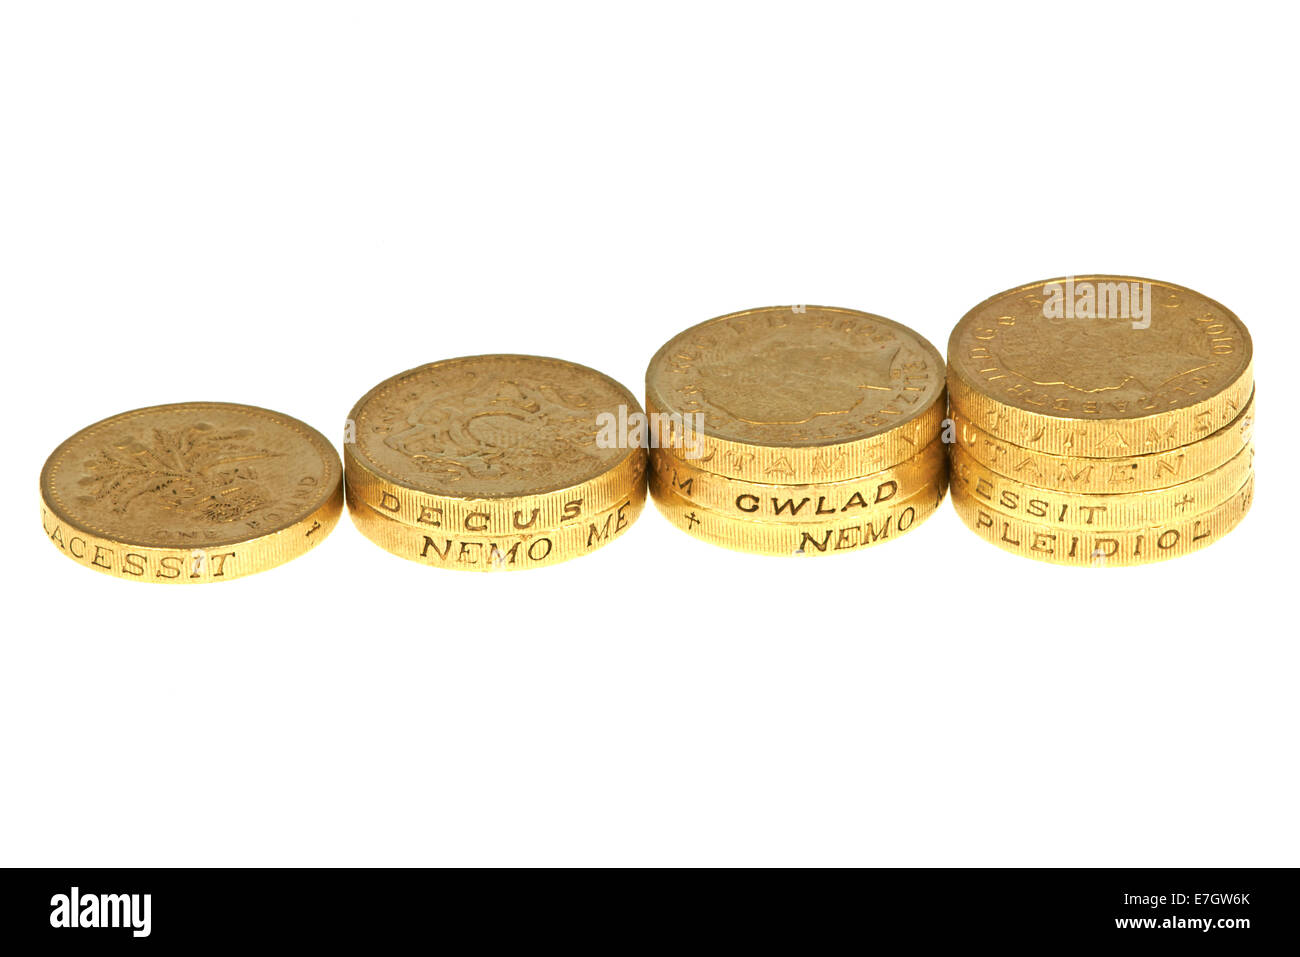 Rising Columns Of Pound Coins - Stock Image